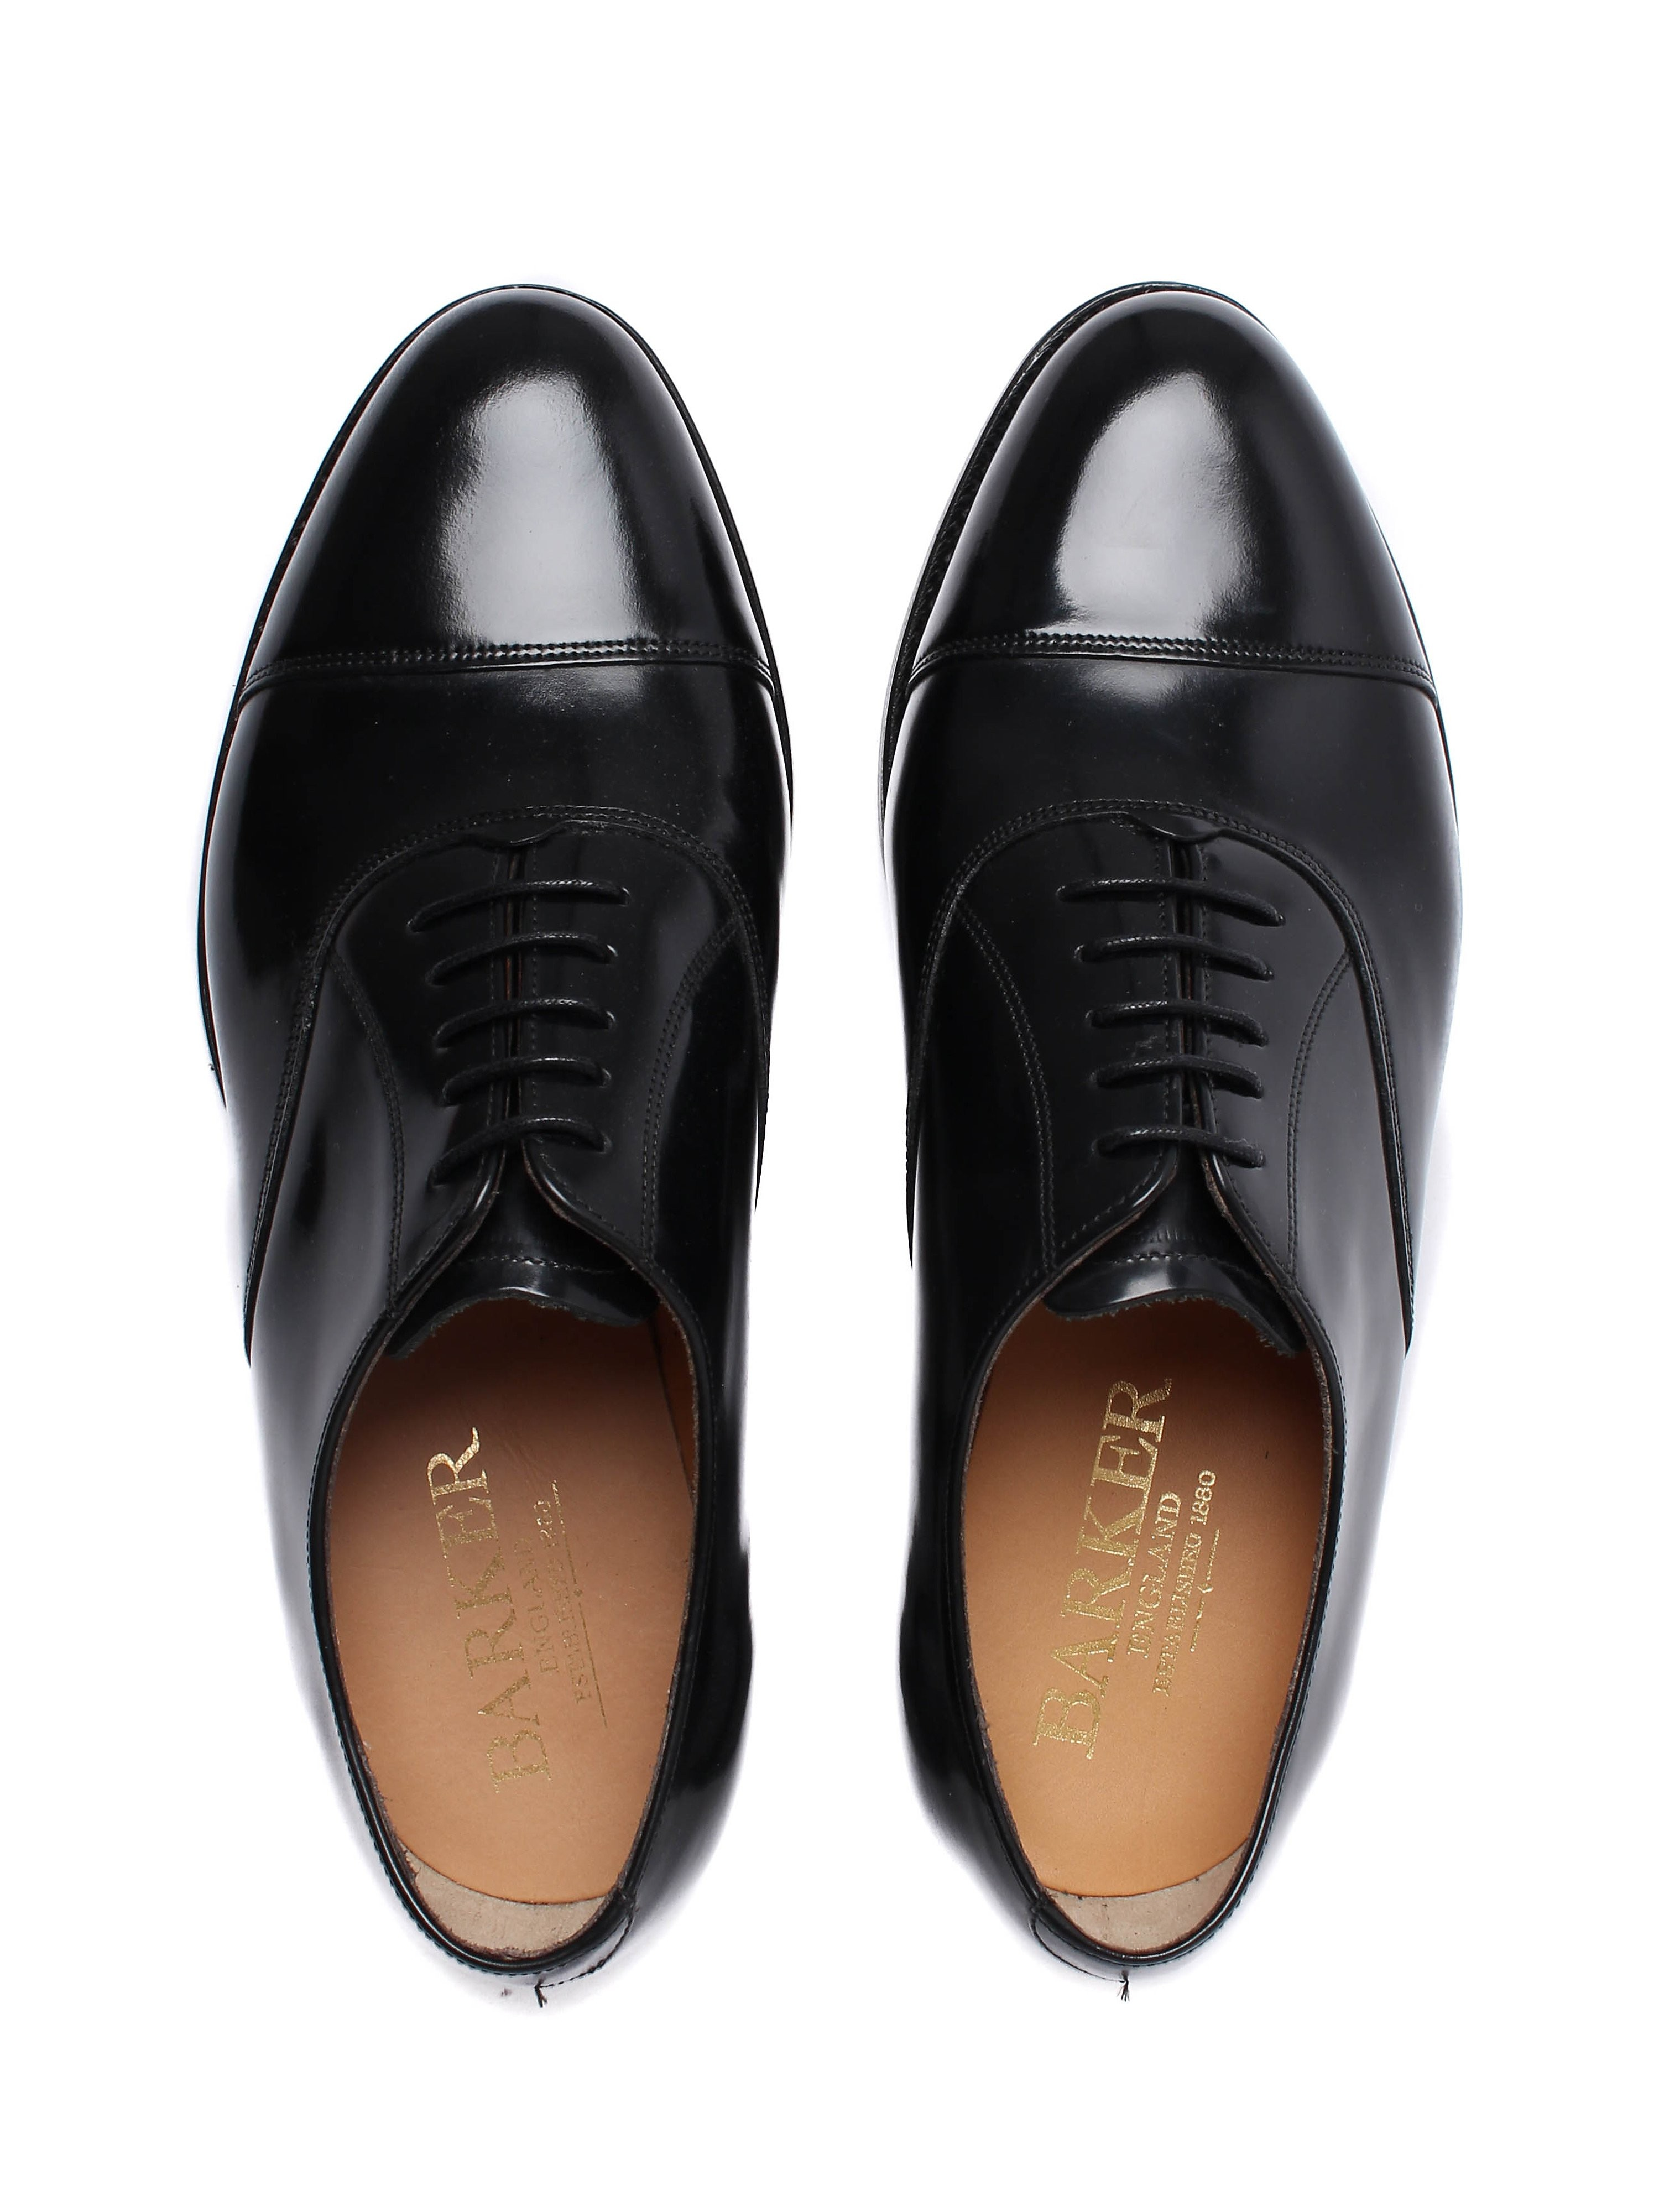 Barker Men's Arnold Leather Cap-Toe Derby Shoes - Black